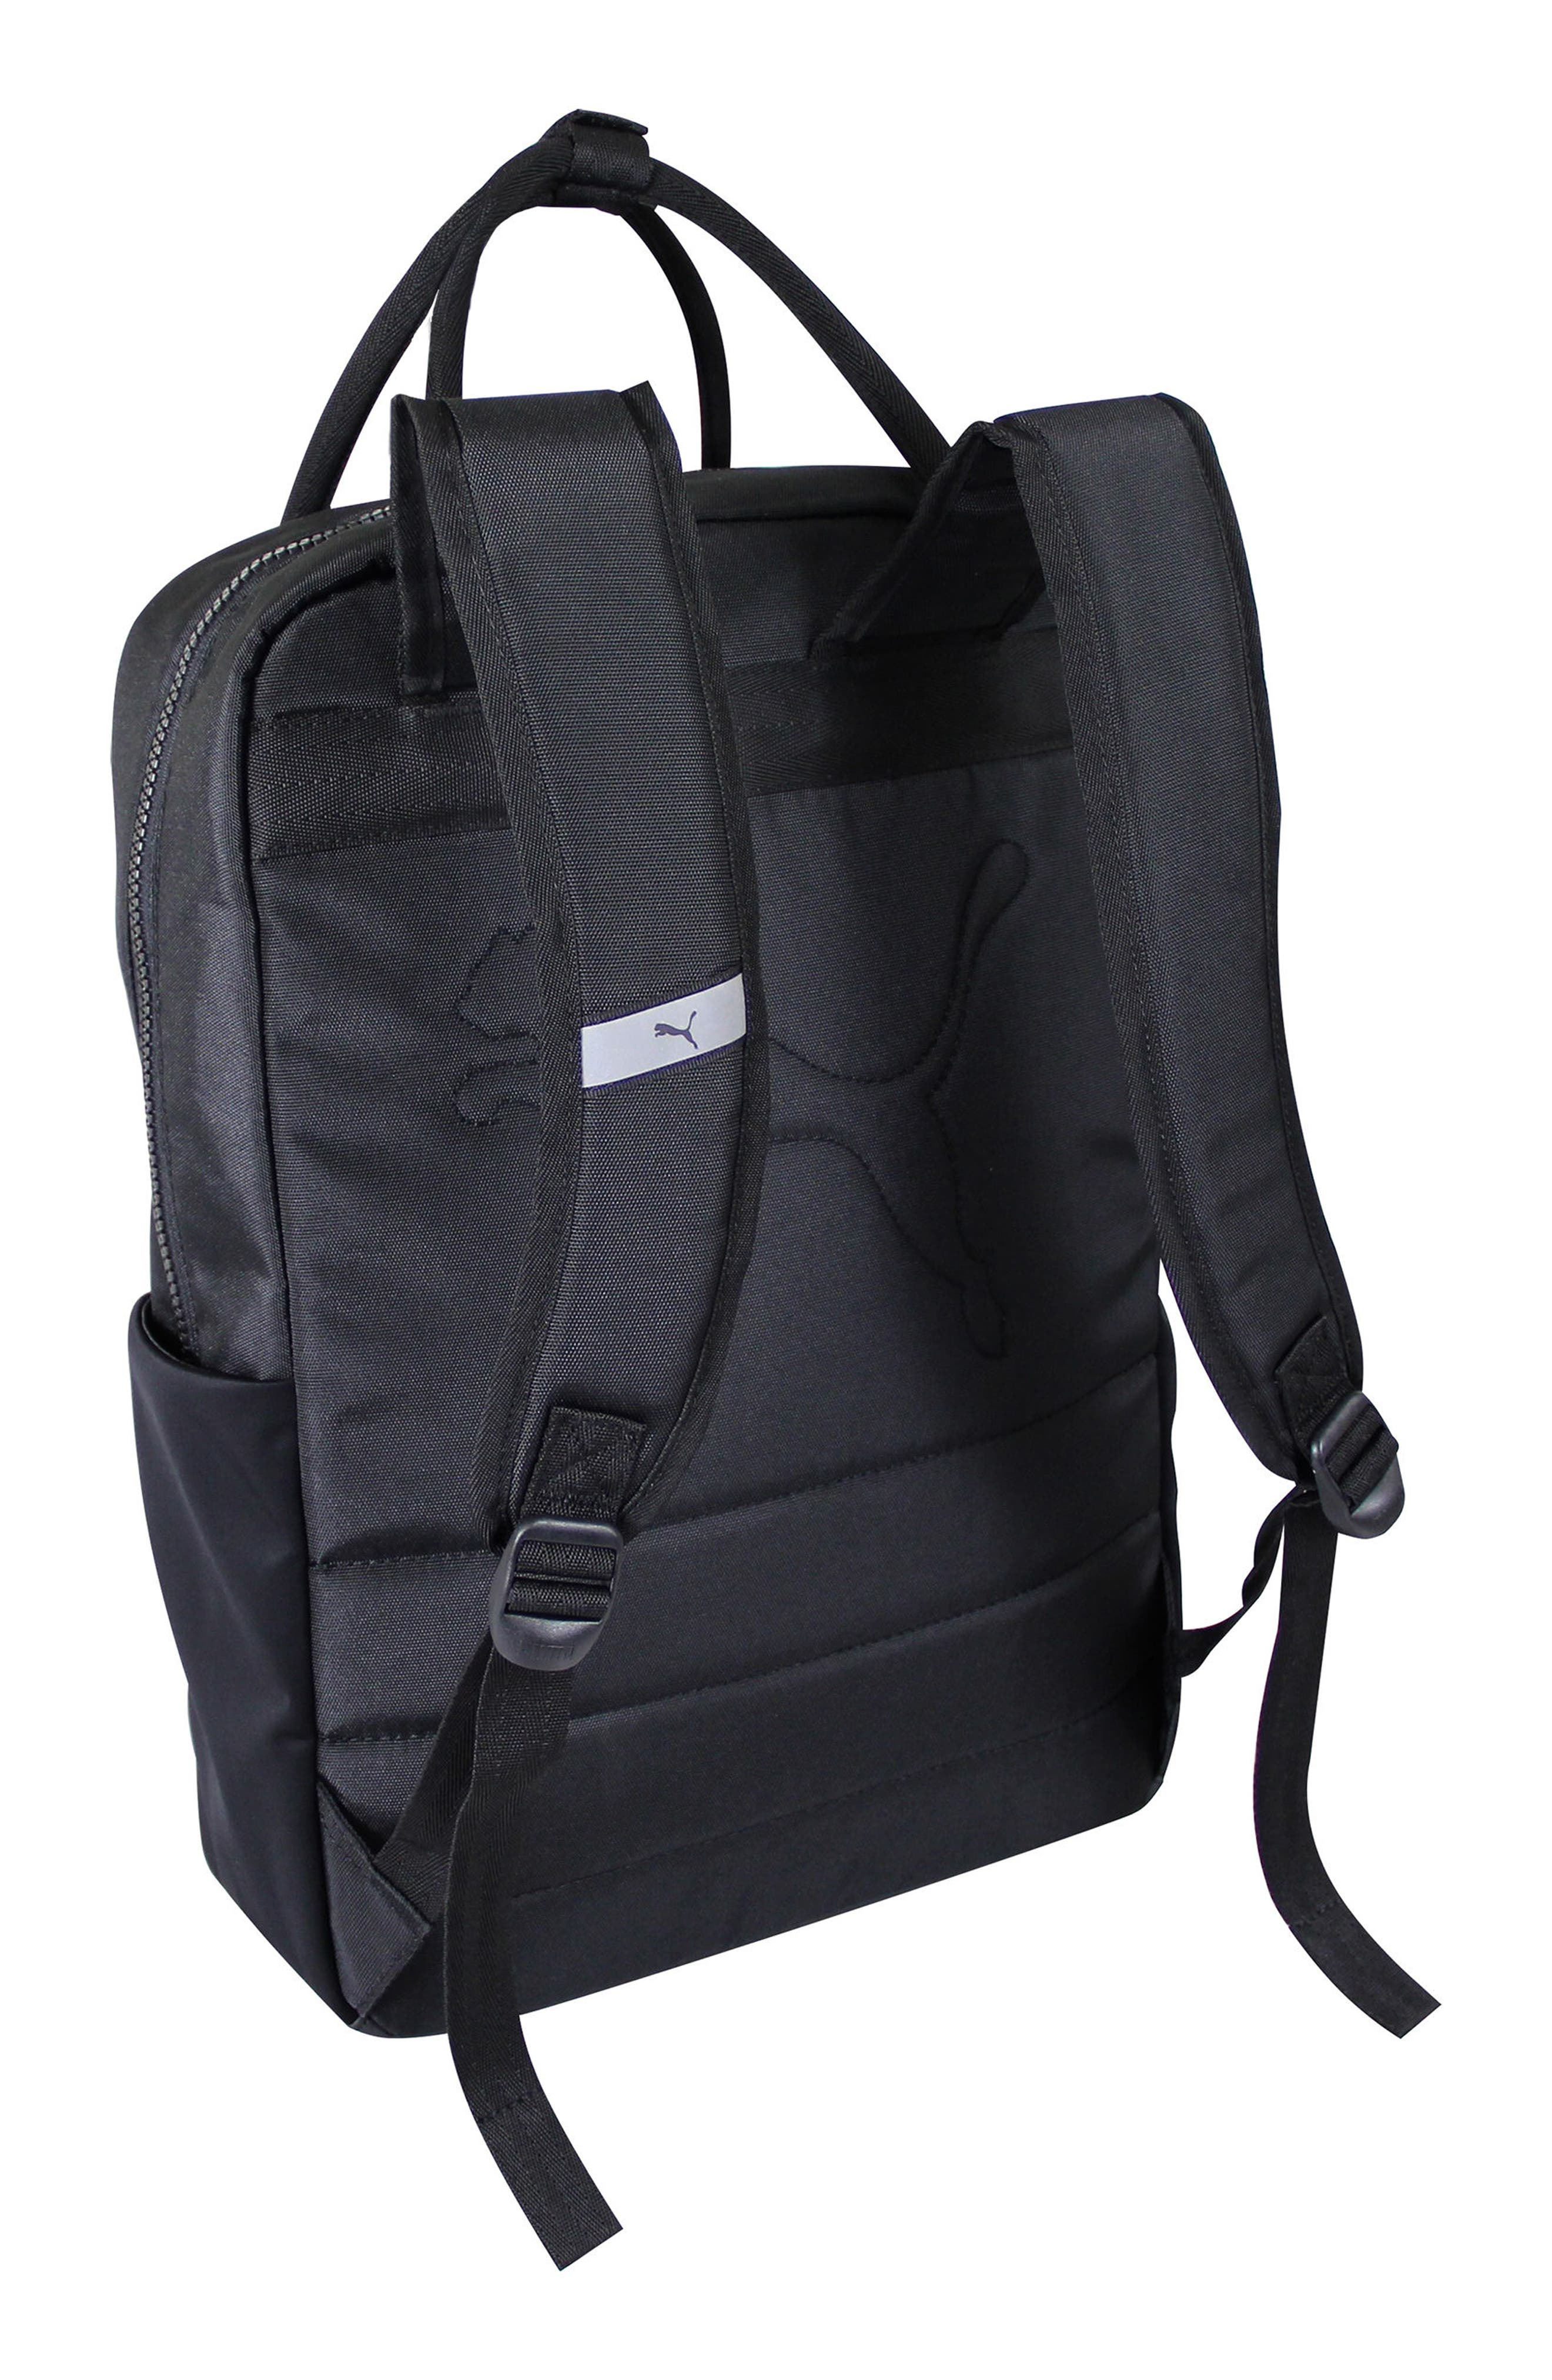 Factor Backpack,                             Alternate thumbnail 2, color,                             001